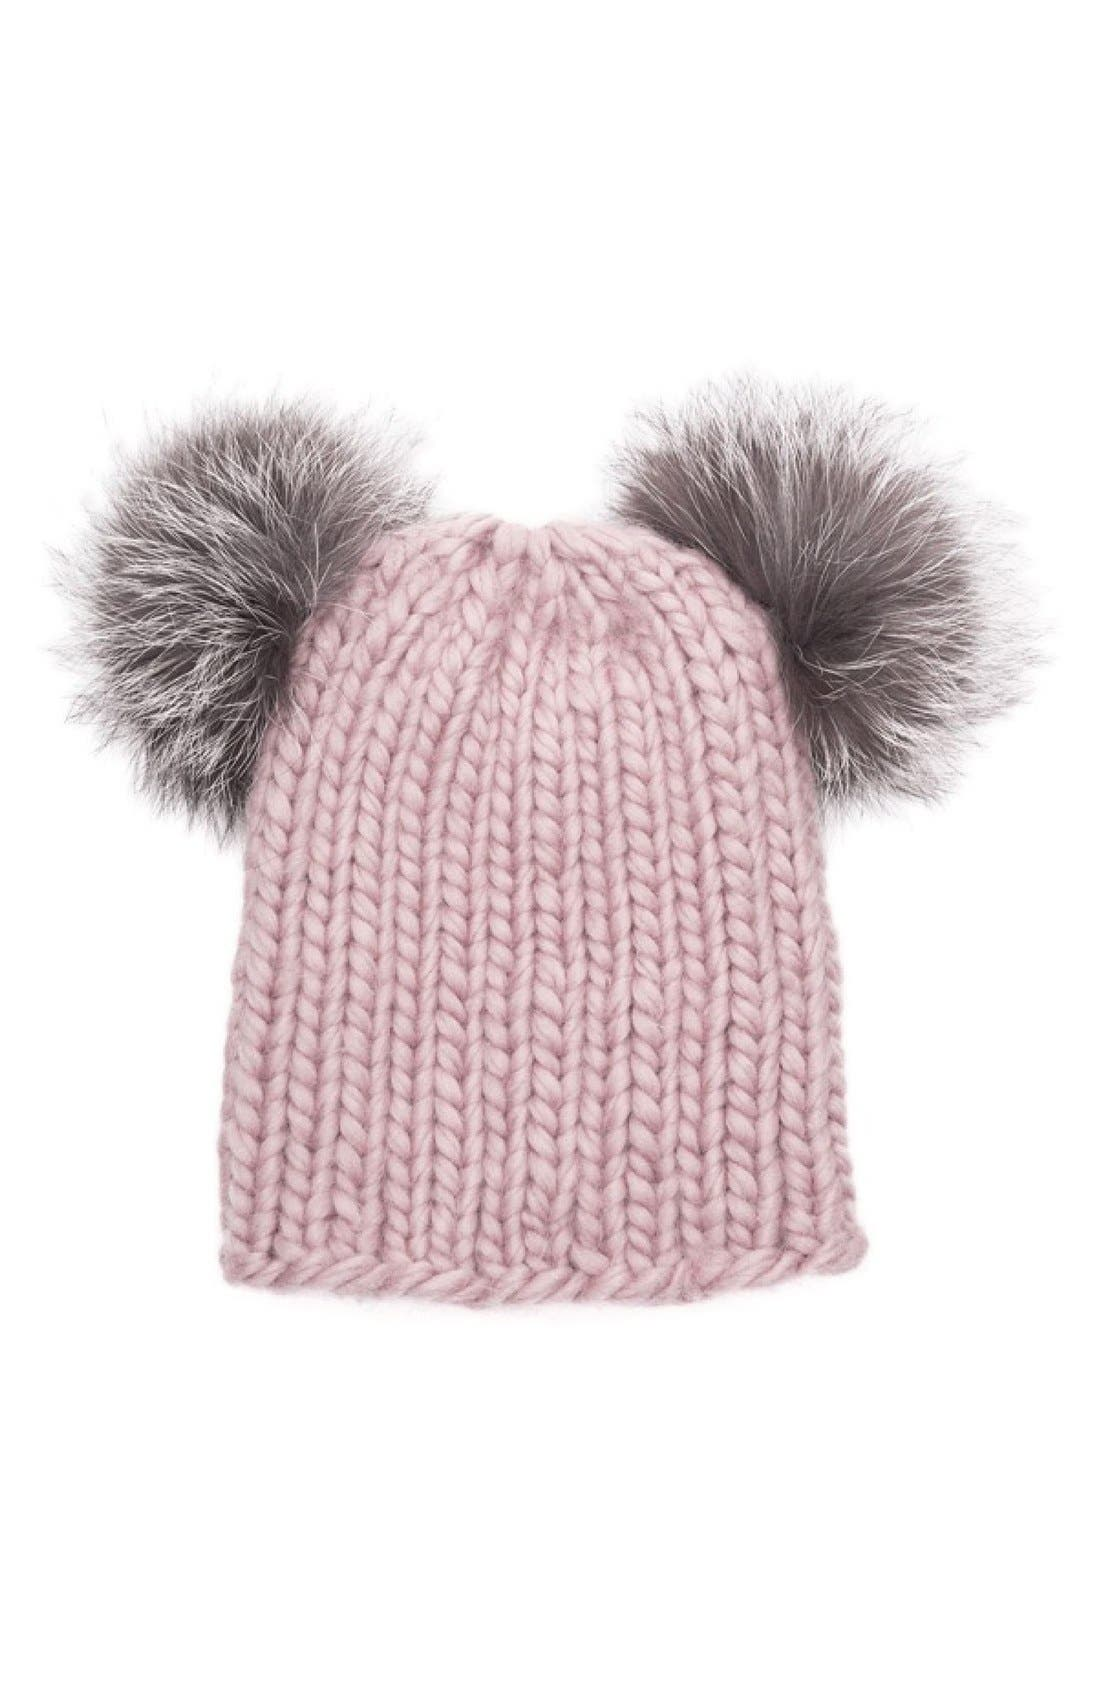 Main Image - Eugenia Kim 'Mimi' Beanie with Genuine Fox Fur Pompoms